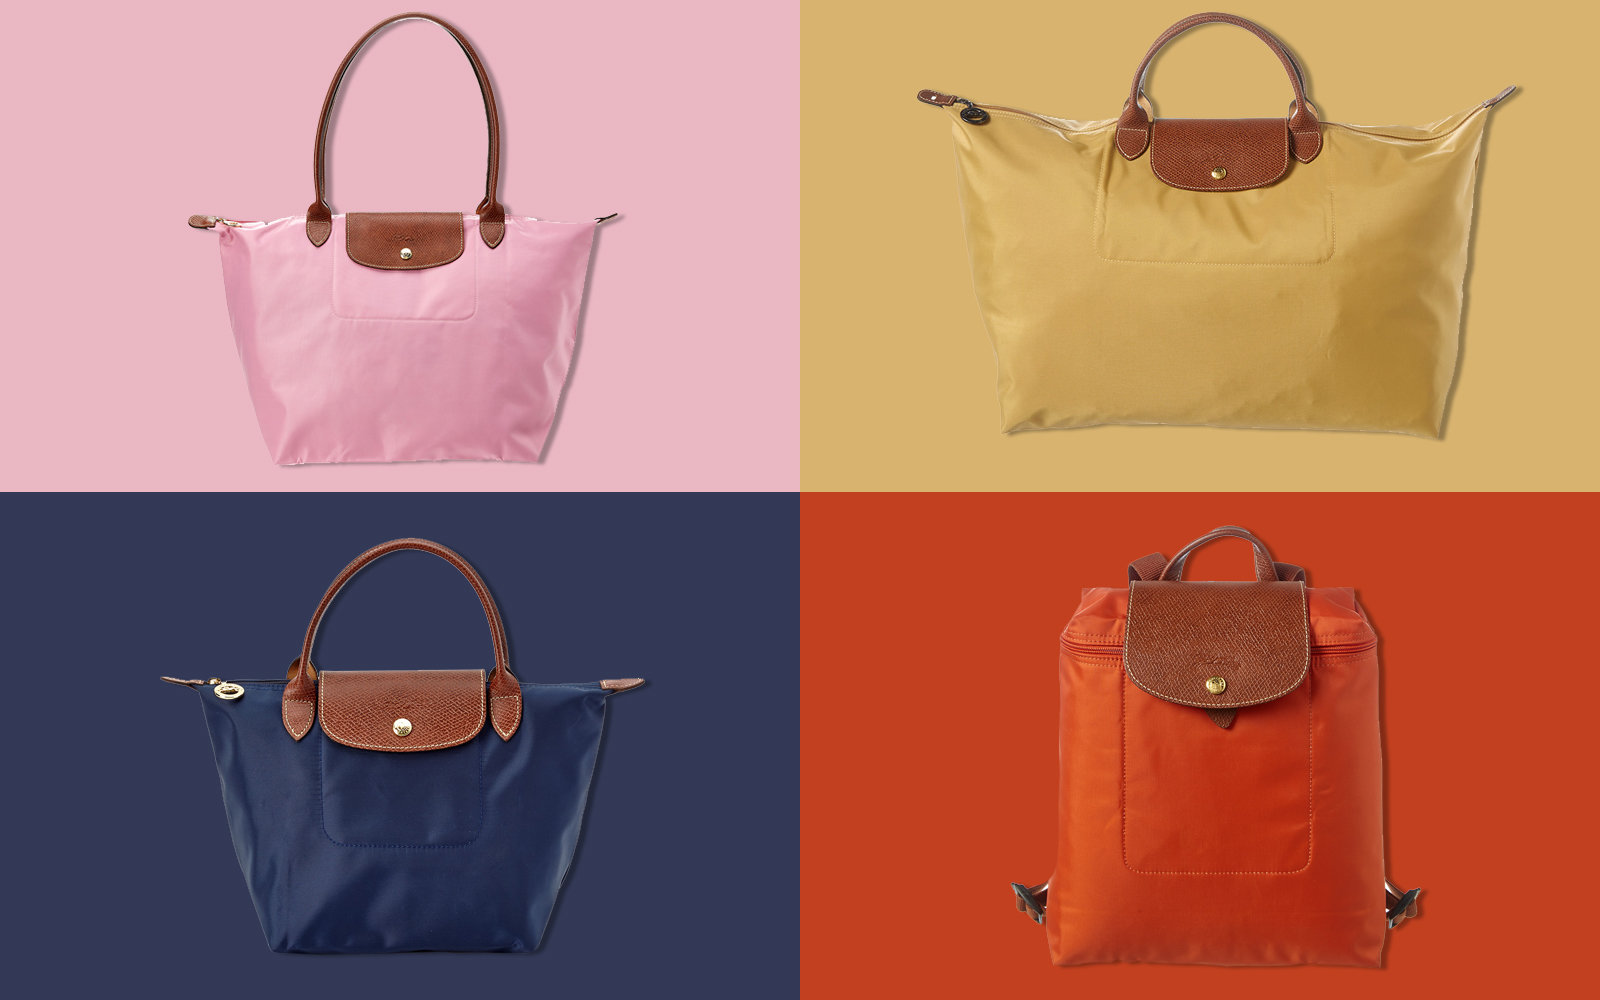 LONGCHAMP-TRAVEL-BAGS-TOTES-on-sale-gilt-LONGCHAMPGILT0519